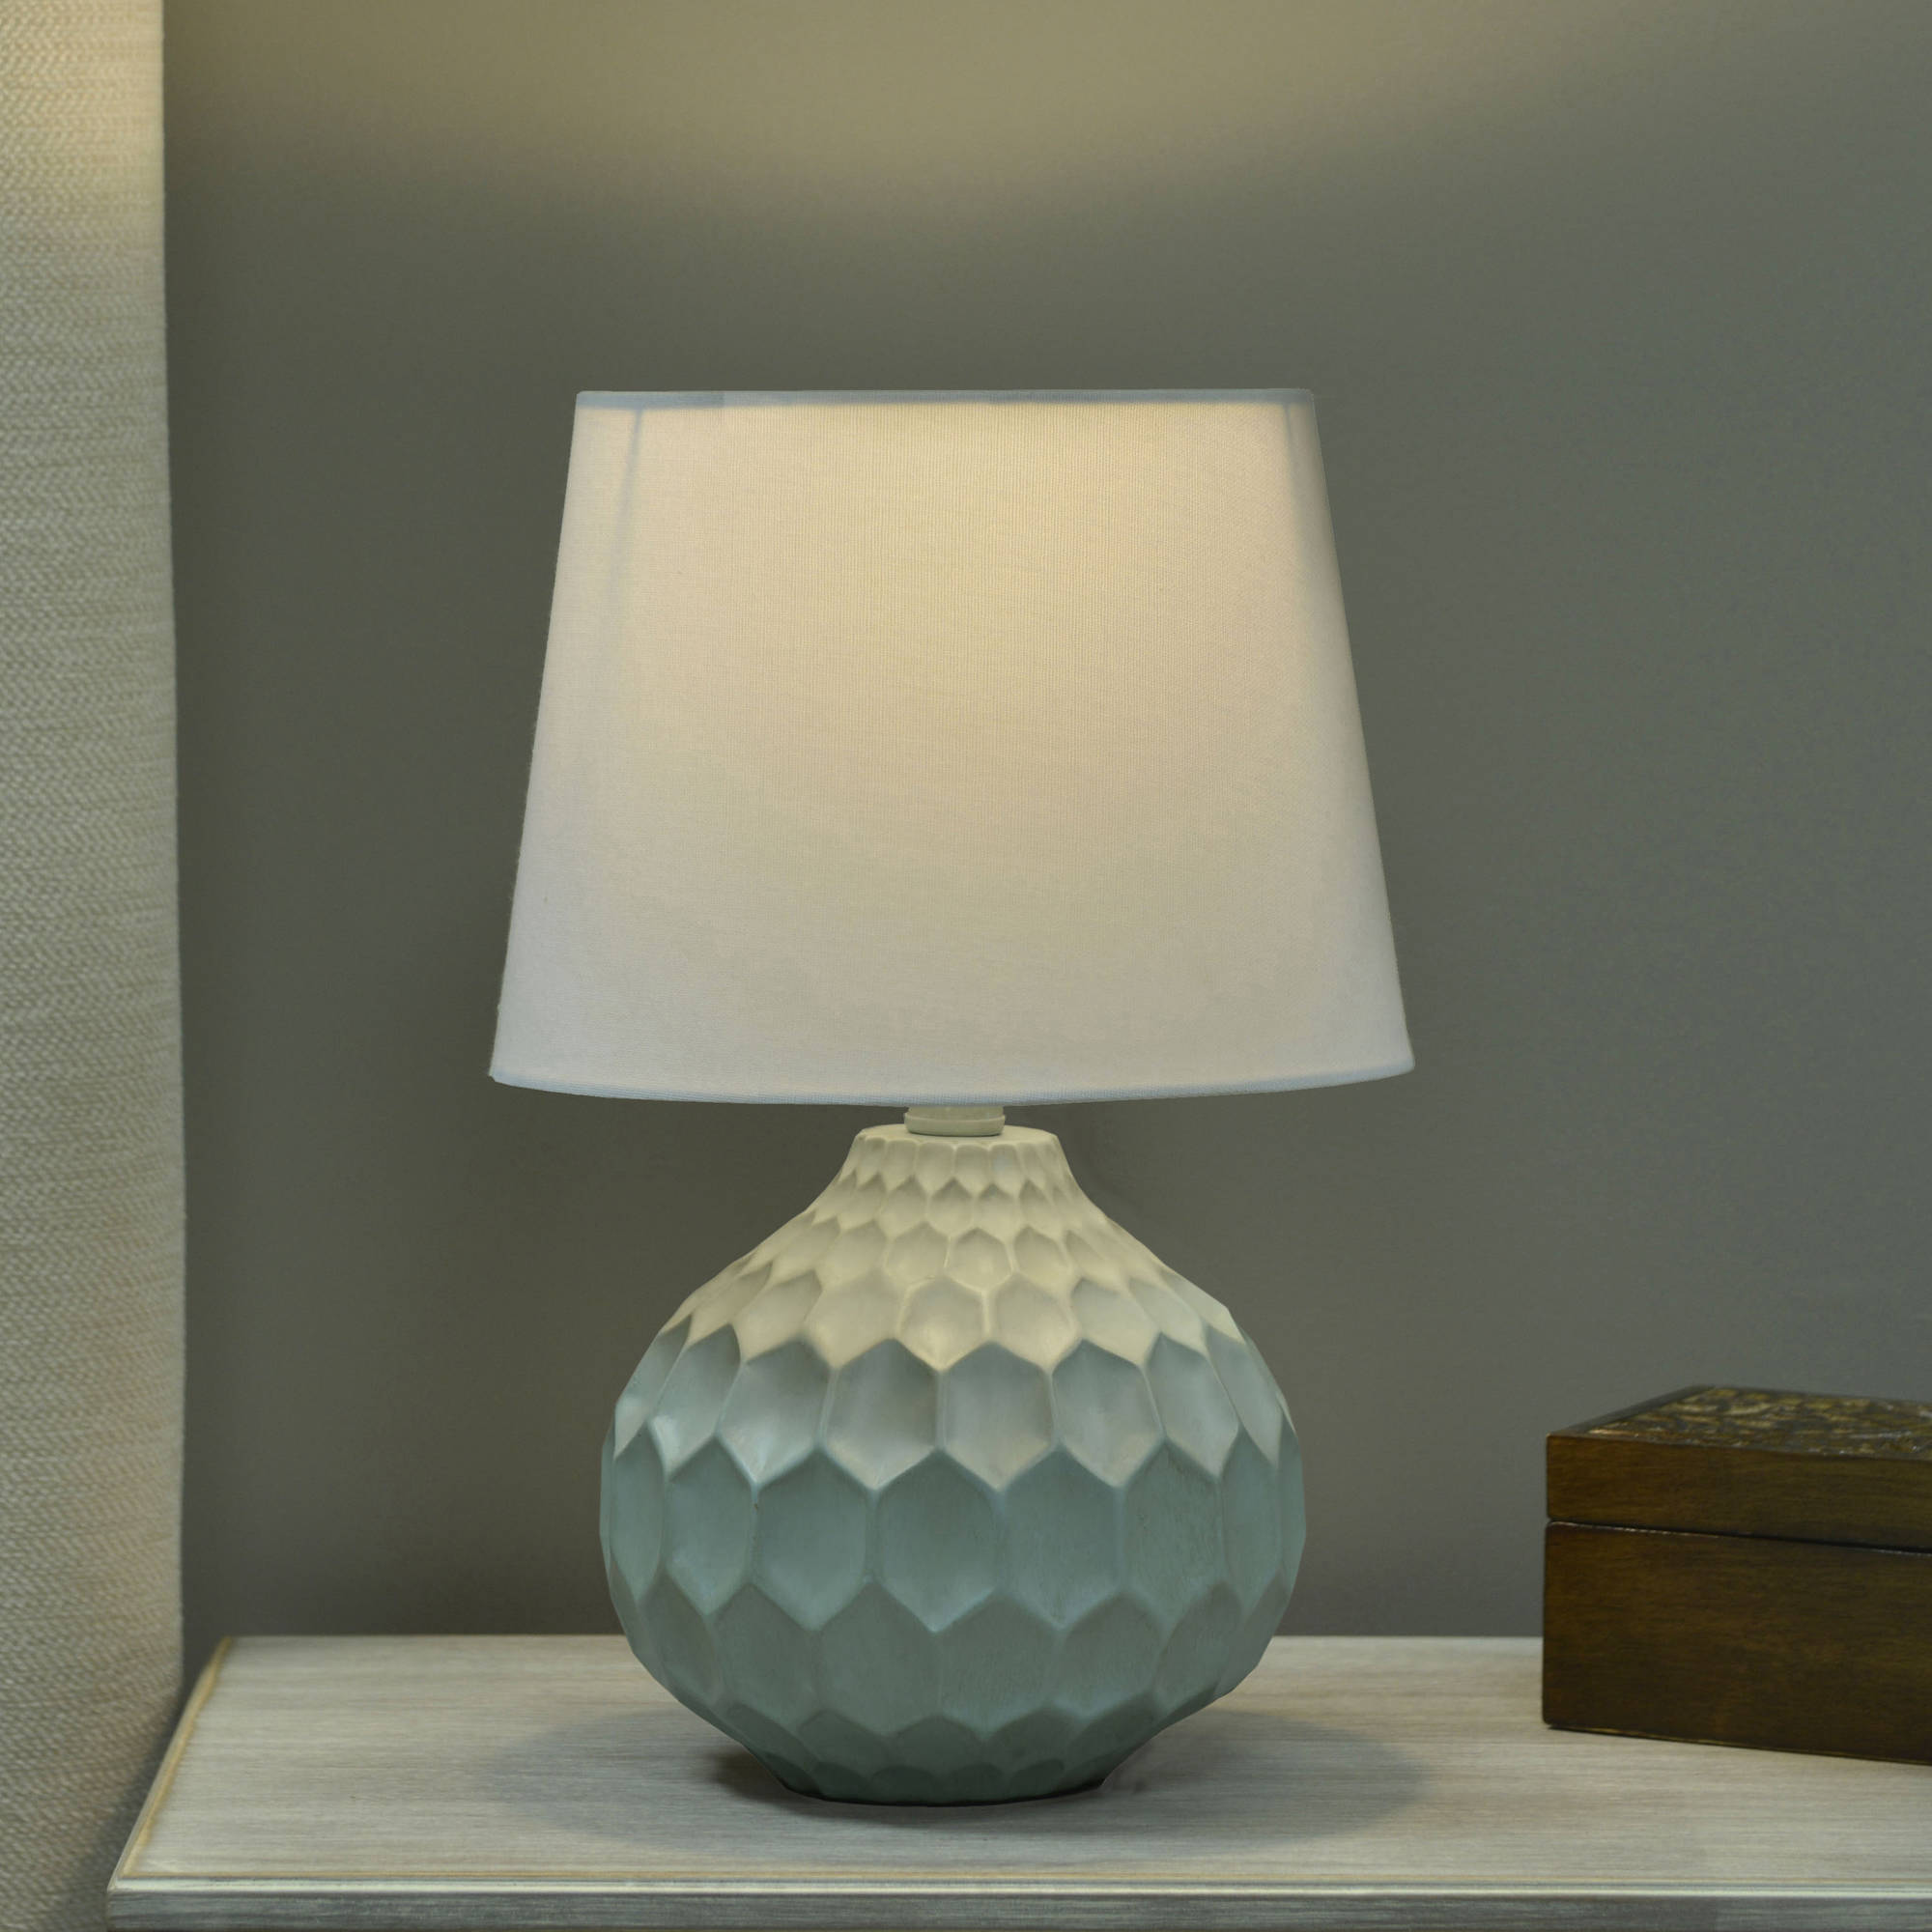 Click here to buy Better Homes and Gardens Faceted Table Lamp with Linen Shade by JIMCO LAMP CO..